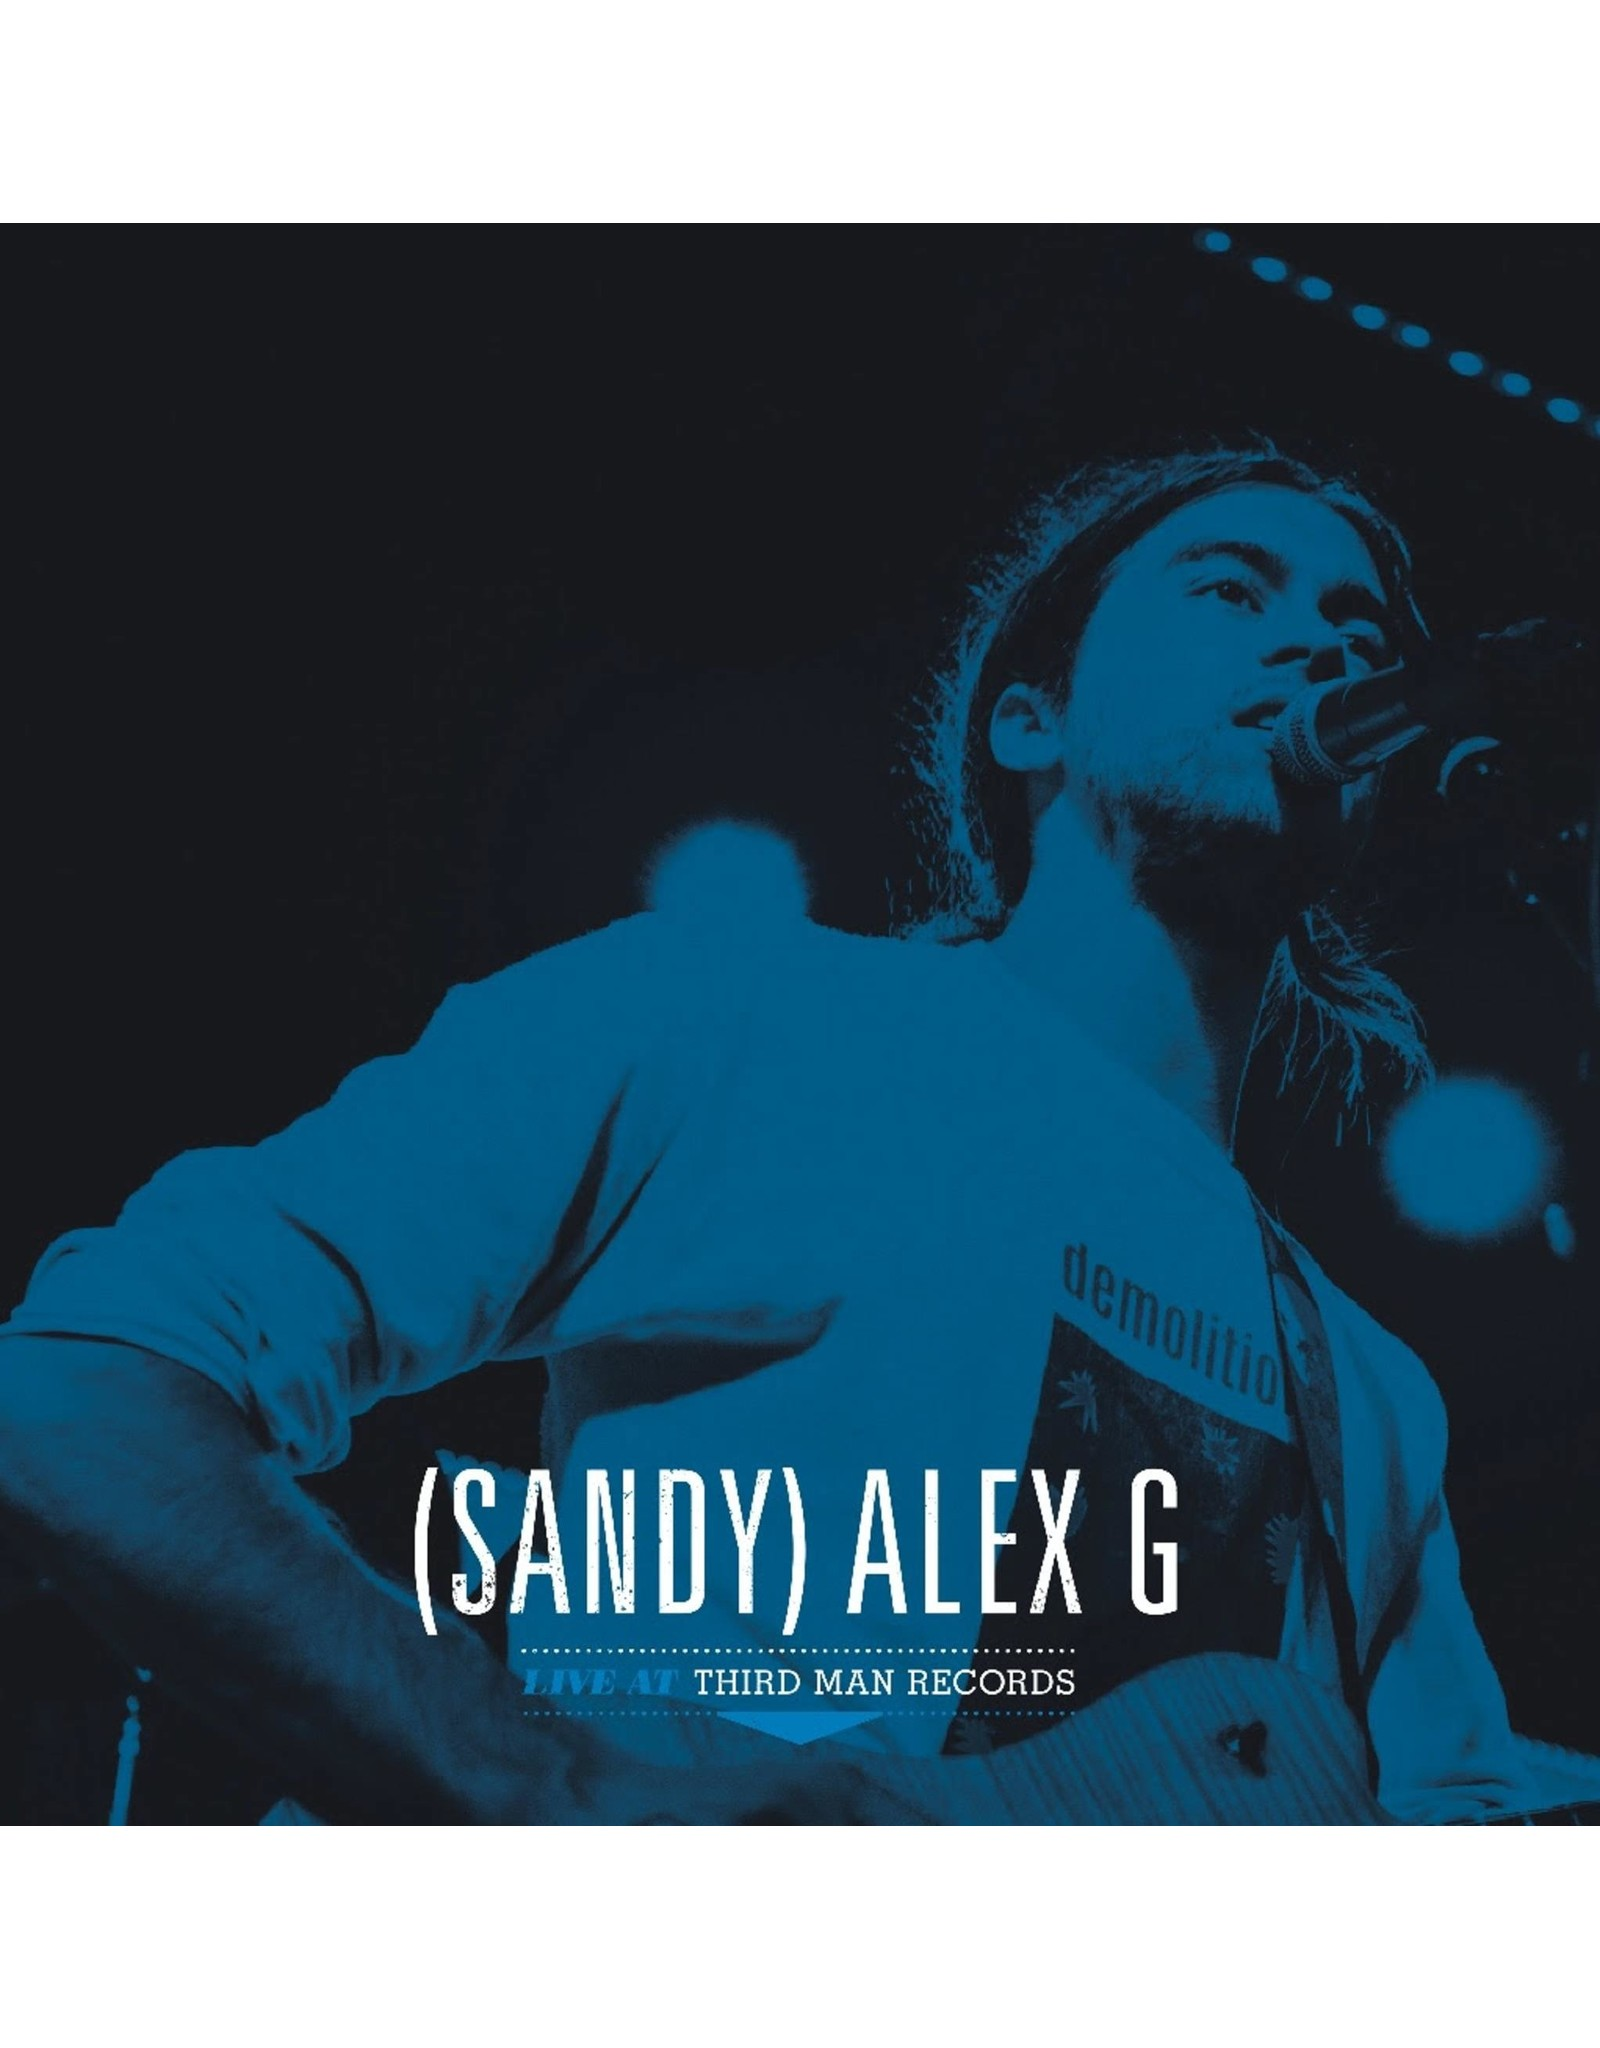 (Sandy) Alex G - Live at Third Man Records LP